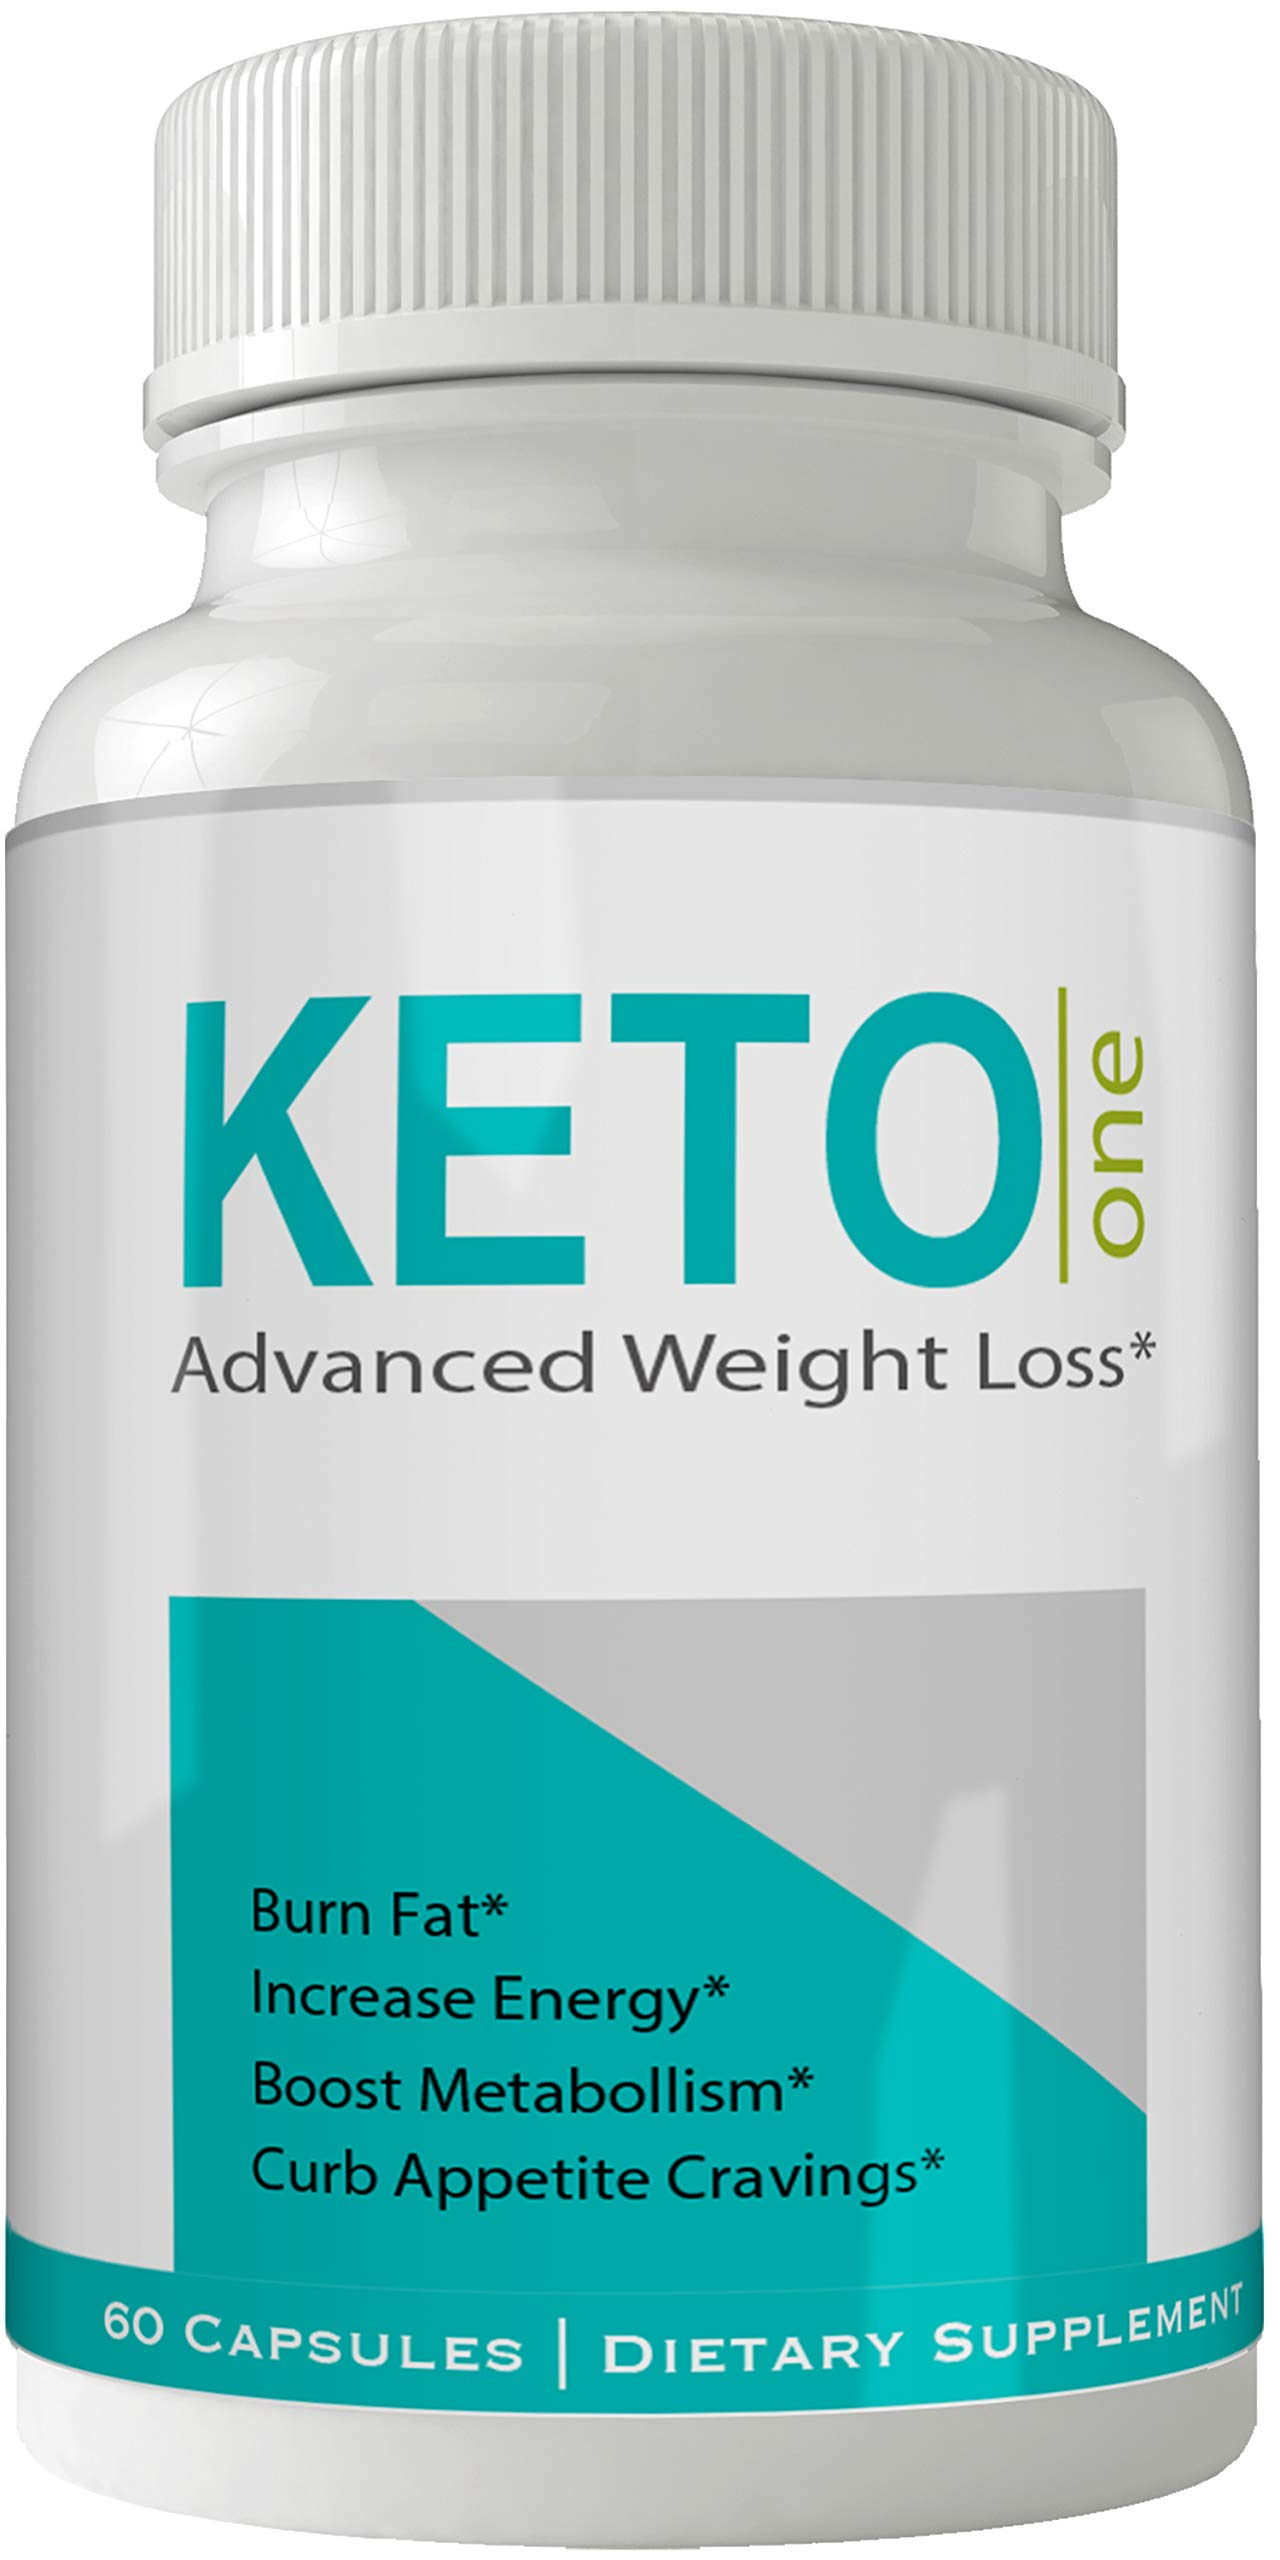 Keto One Diet Pills Advance Weight Loss Supplement Appetite Suppressant Natural Ketogenic 800 mg Formula with BHB Salts Ketone Diet Capsules to Boost Metabolism, Energy and Focus ...